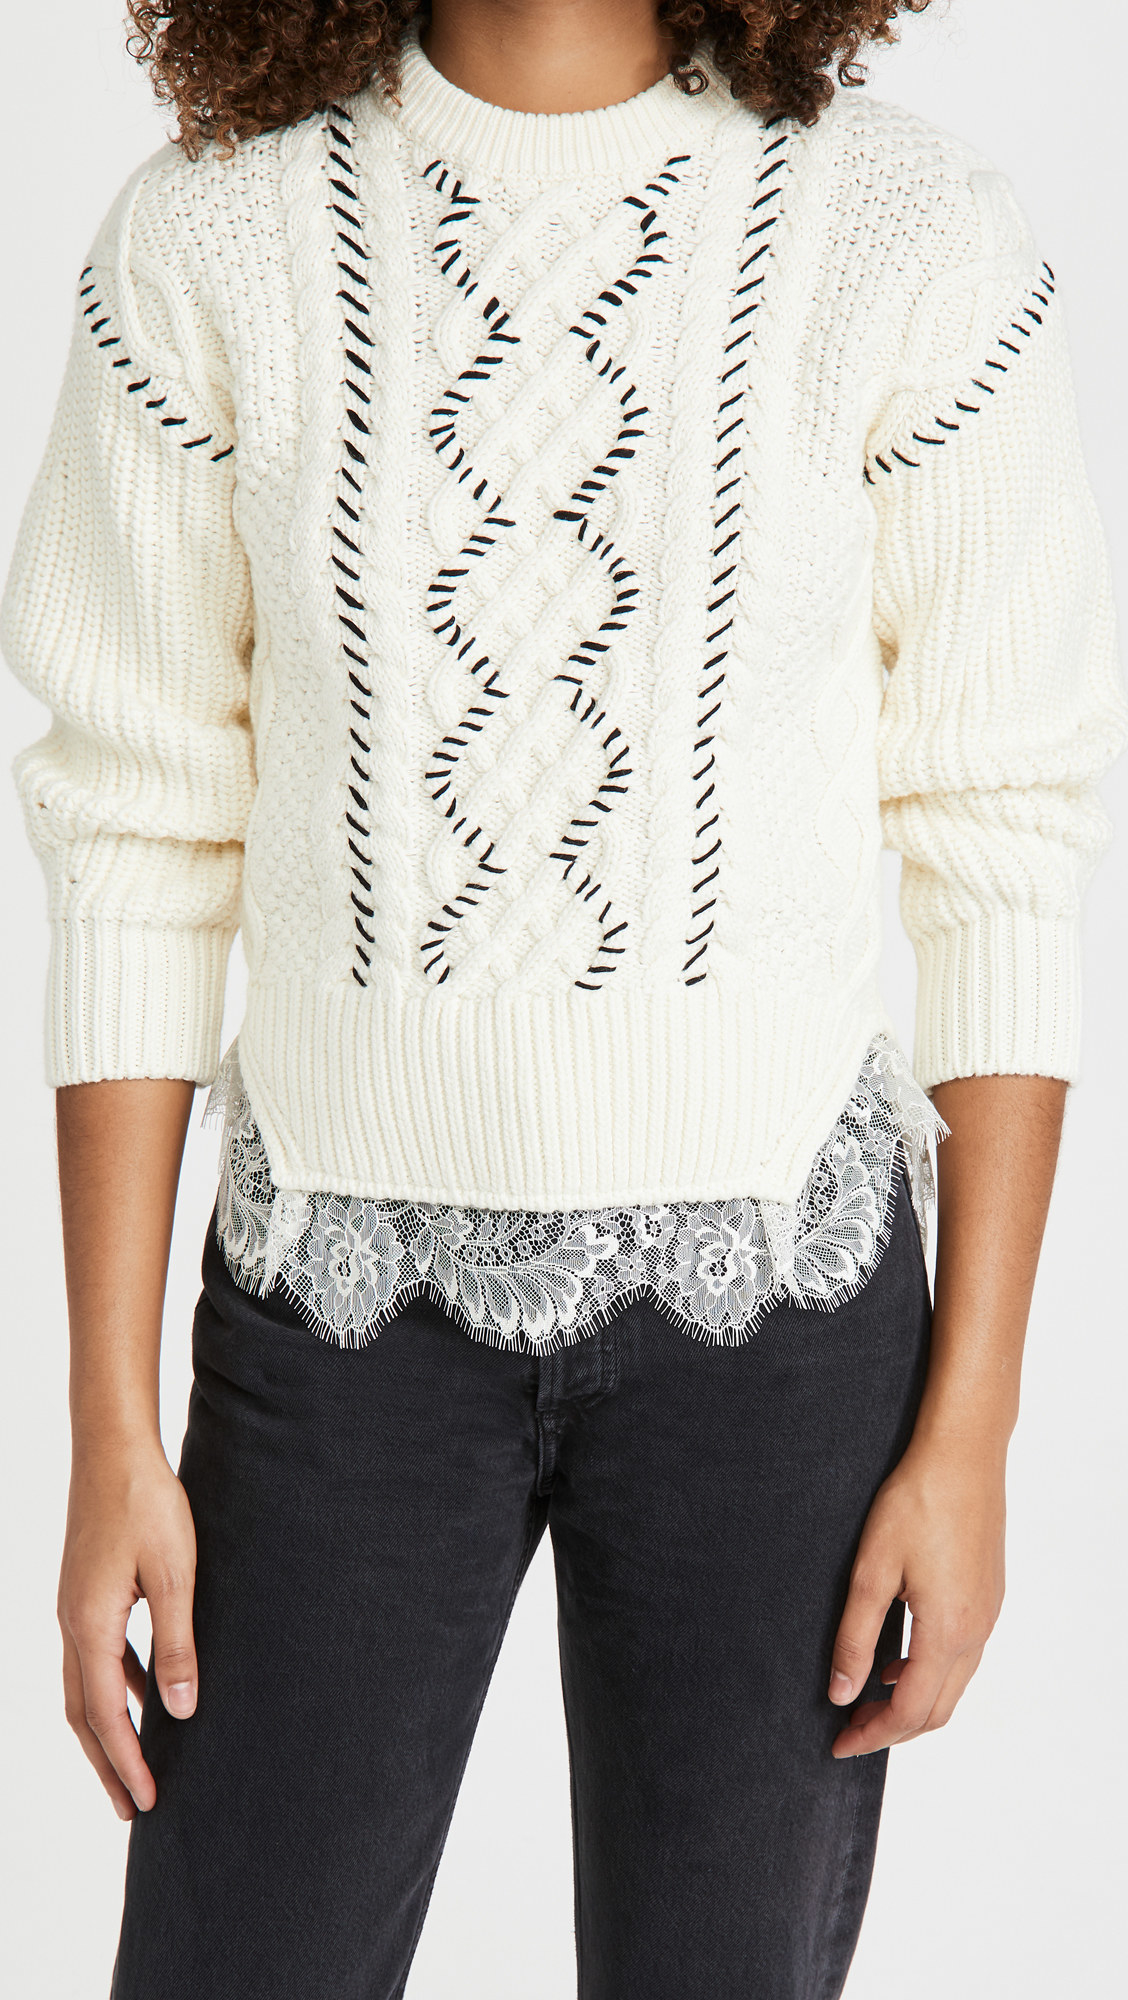 A model wearing the white cable knit sweater with black stitch details and white lace at the bottom with black jeans